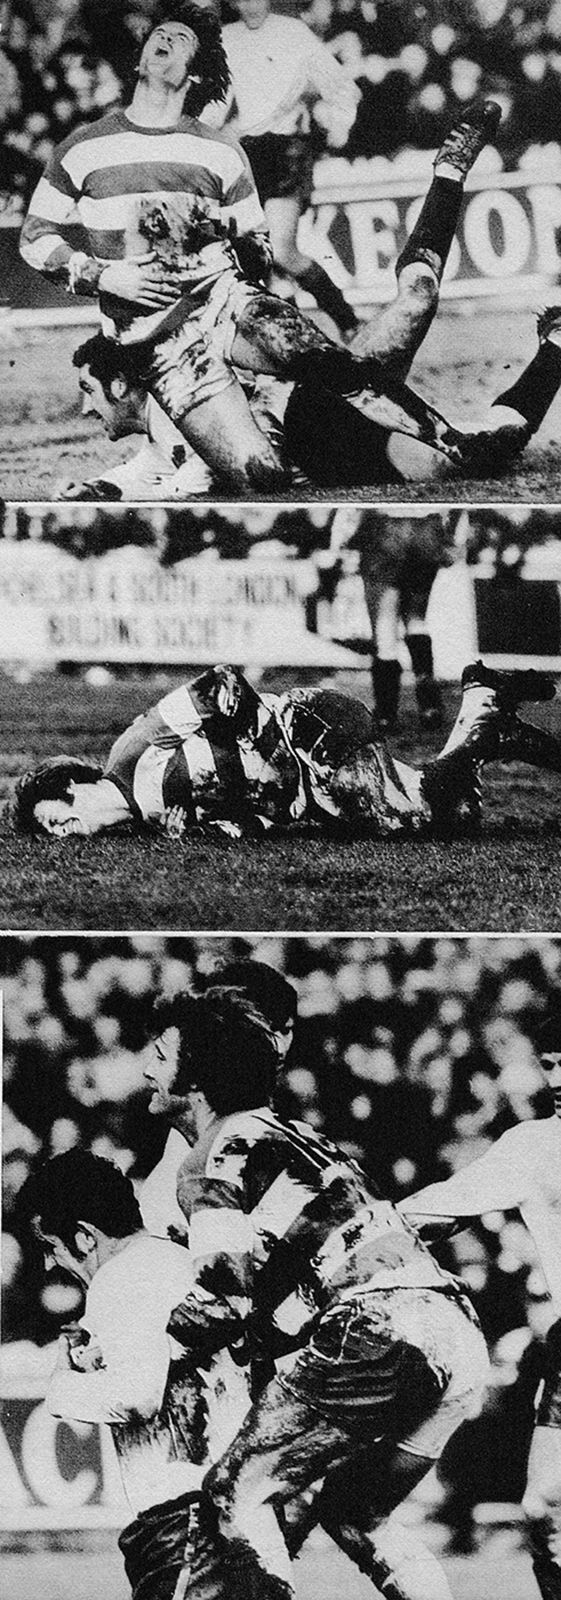 7th February 1970. Queens Park Rangers playmaker Rodney Marsh finding that Derby County hard man Dave Mackay had lost none of his bite in an FA Cup 5th Round, at Loftus Road